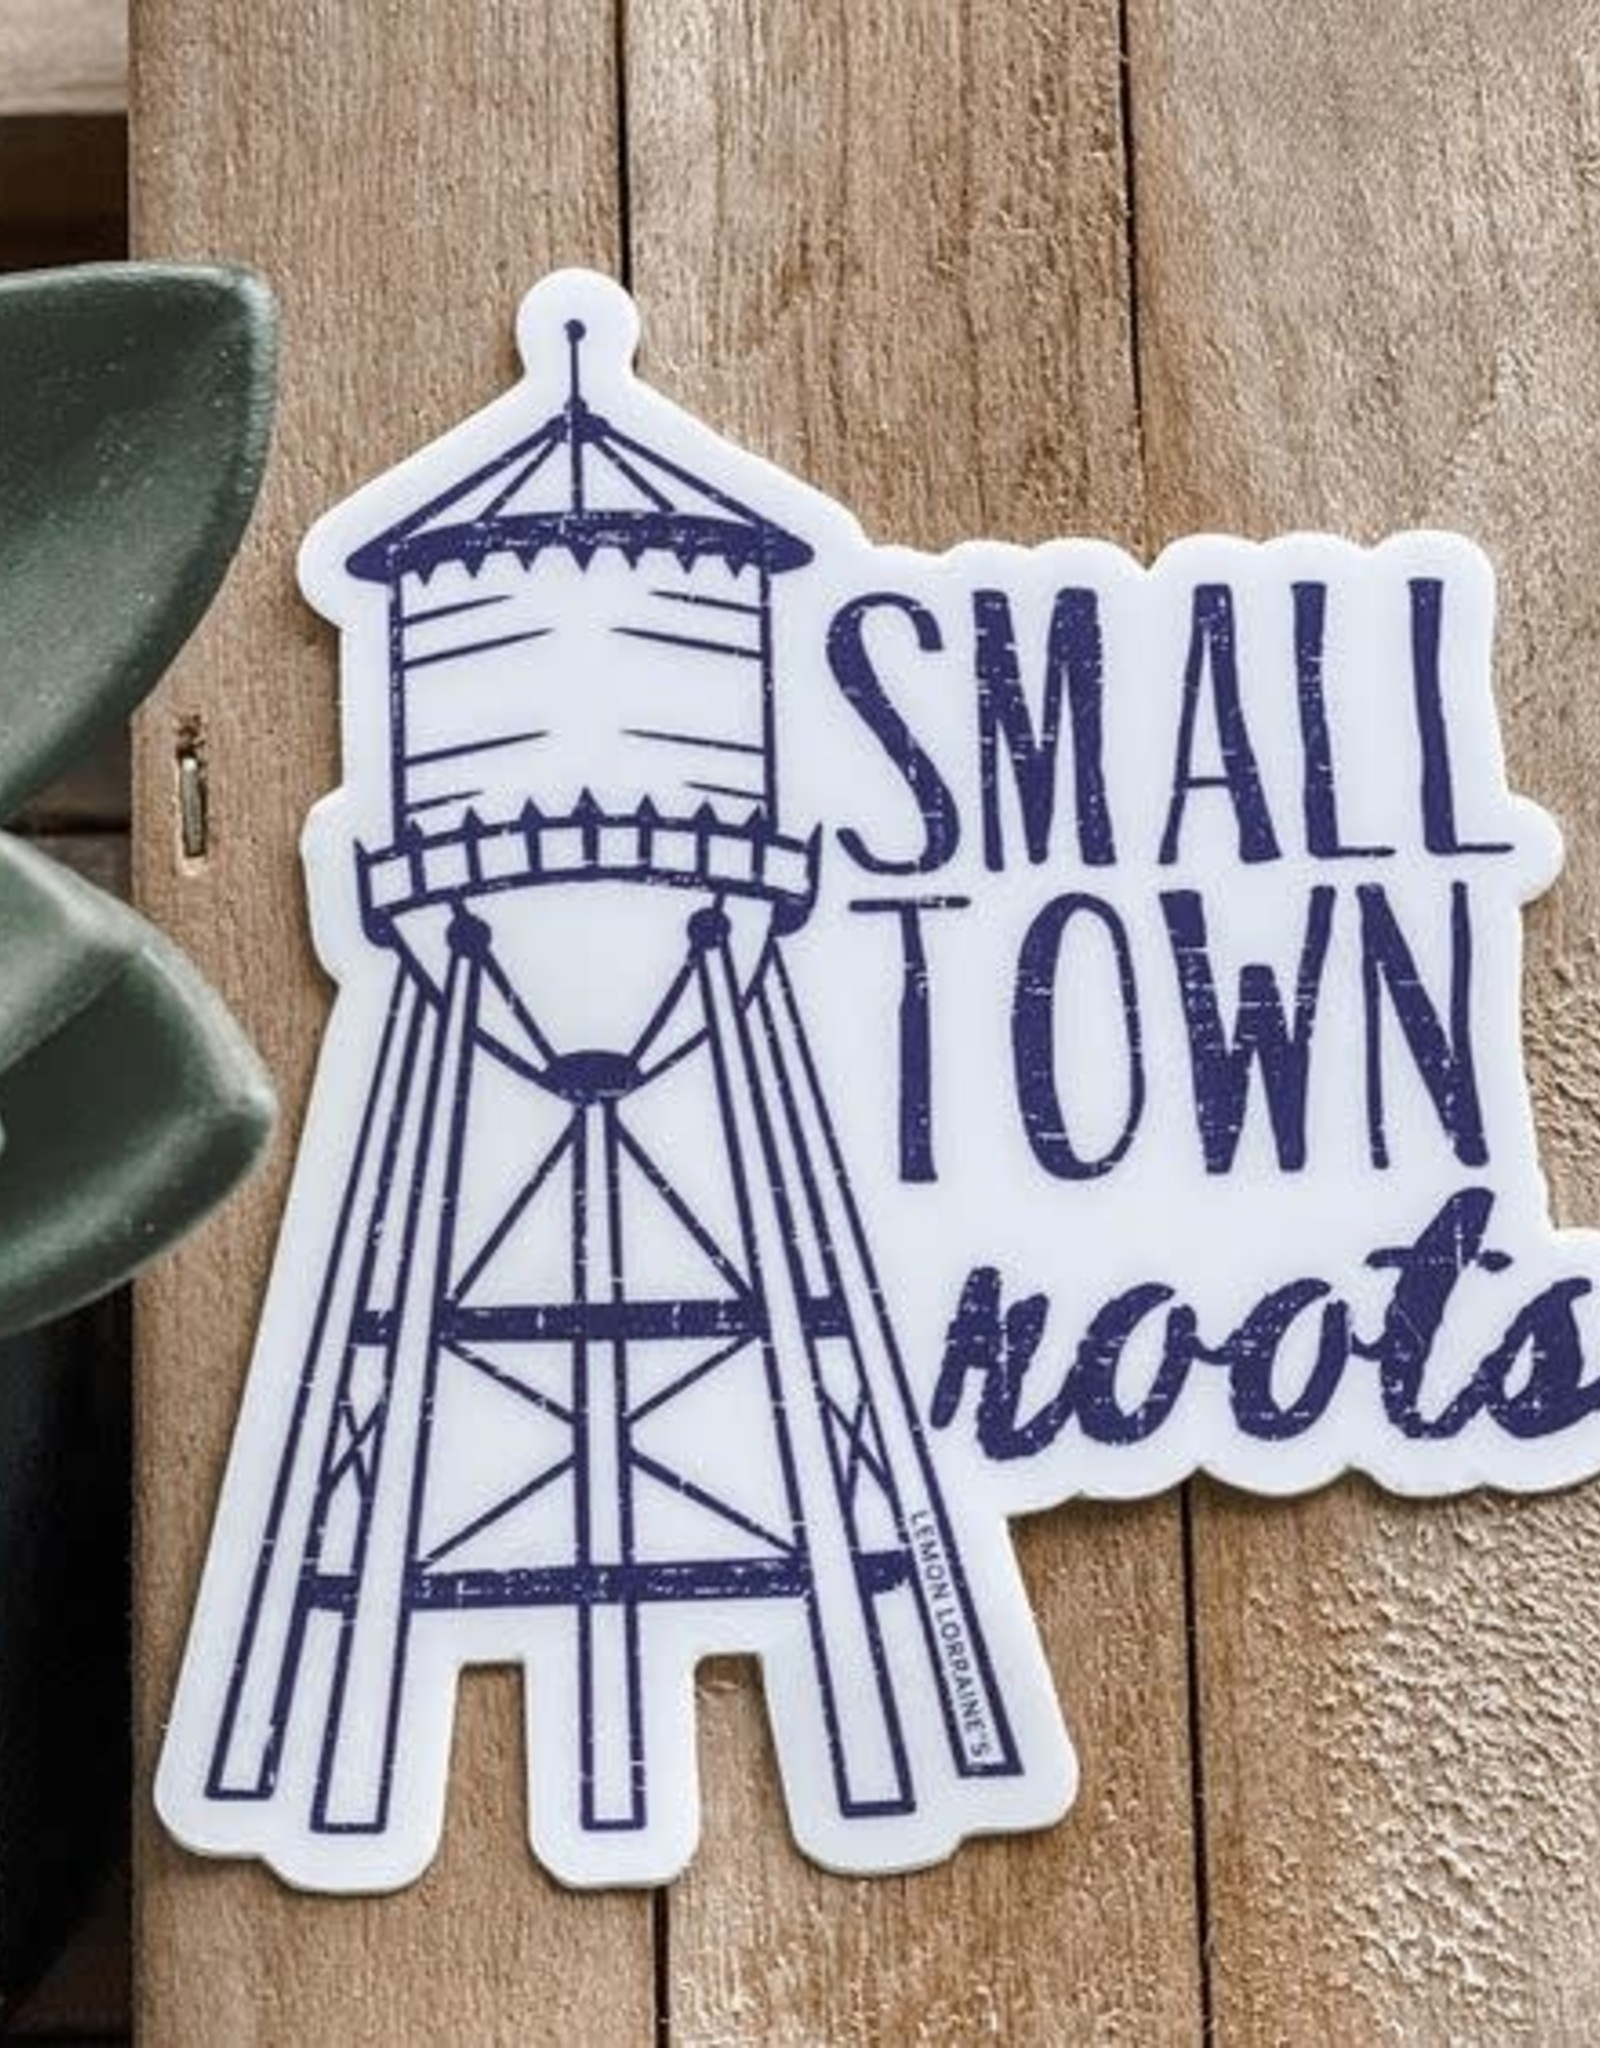 Wink Small Town Roots Sticker